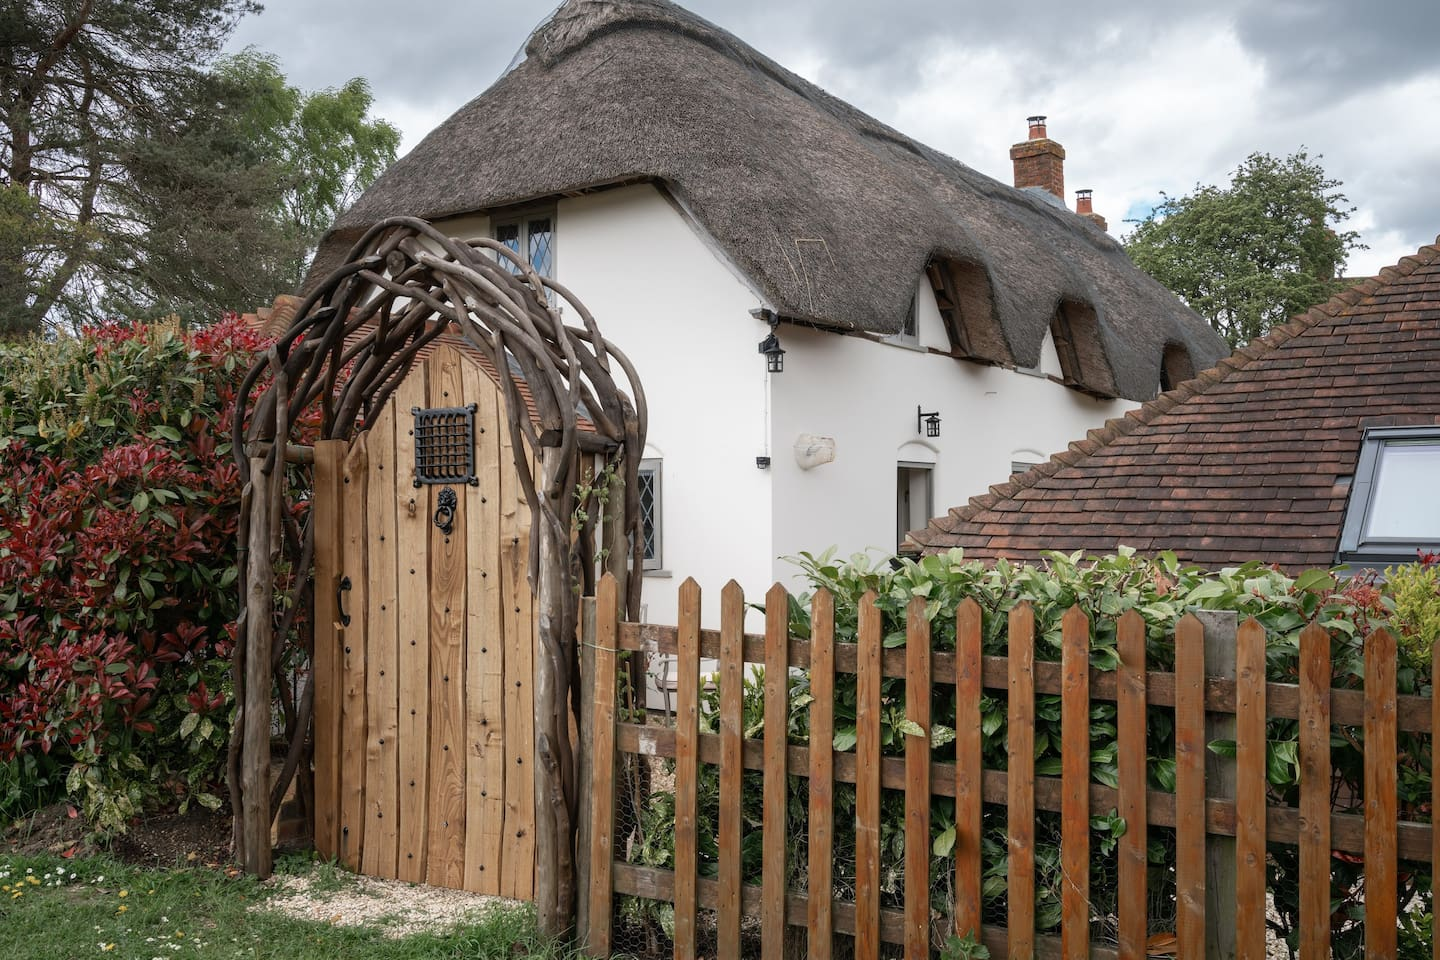 Pond Cottage annexe has three double bedrooms and is situated in a small quiet Hampshire hamlet within easy reach of award-winning pubs and restaurants. Highclere Castle nearby. Soak in our cedar hot tub enjoying views over the large secluded garden.